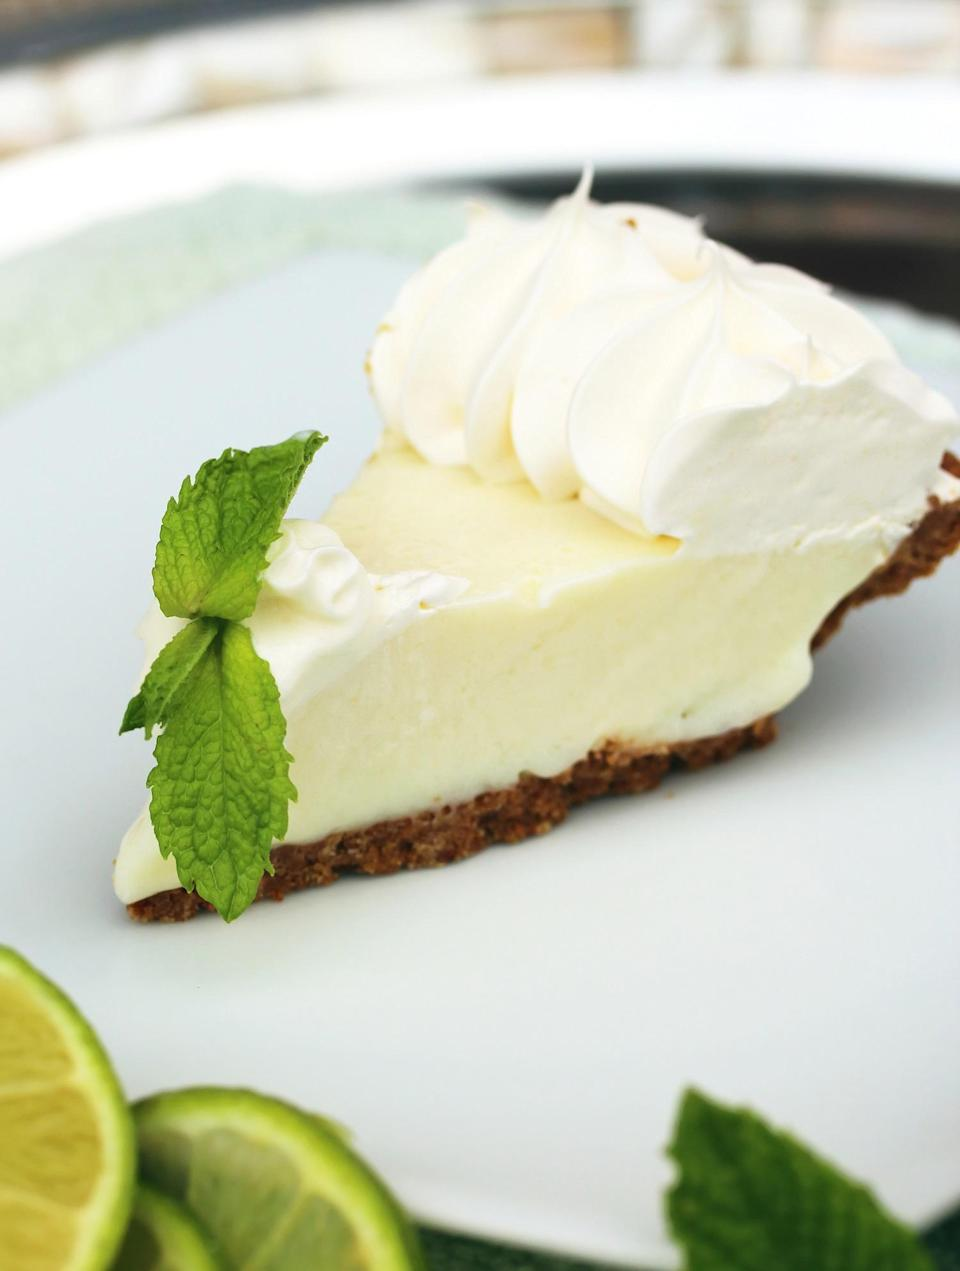 """<p>Key lime pie is one of <a href=""""https://www.thedailymeal.com/cook/iconic-state-desserts-gallery?referrer=yahoo&category=beauty_food&include_utm=1&utm_medium=referral&utm_source=yahoo&utm_campaign=feed"""" rel=""""nofollow noopener"""" target=""""_blank"""" data-ylk=""""slk:the most iconic desserts in America"""" class=""""link rapid-noclick-resp"""">the most iconic desserts in America</a>, especially if you've spent any time in Florida. This tart, cream-based pie filling is balanced with a fun new addition to this recipe: a chocolate crust.</p> <p><a href=""""https://www.thedailymeal.com/recipes/chocolate-crusted-key-lime-pie-recipe?referrer=yahoo&category=beauty_food&include_utm=1&utm_medium=referral&utm_source=yahoo&utm_campaign=feed"""" rel=""""nofollow noopener"""" target=""""_blank"""" data-ylk=""""slk:For the Chocolate-Crusted Key Lime Pie recipe, click here."""" class=""""link rapid-noclick-resp"""">For the Chocolate-Crusted Key Lime Pie recipe, click here.</a></p>"""